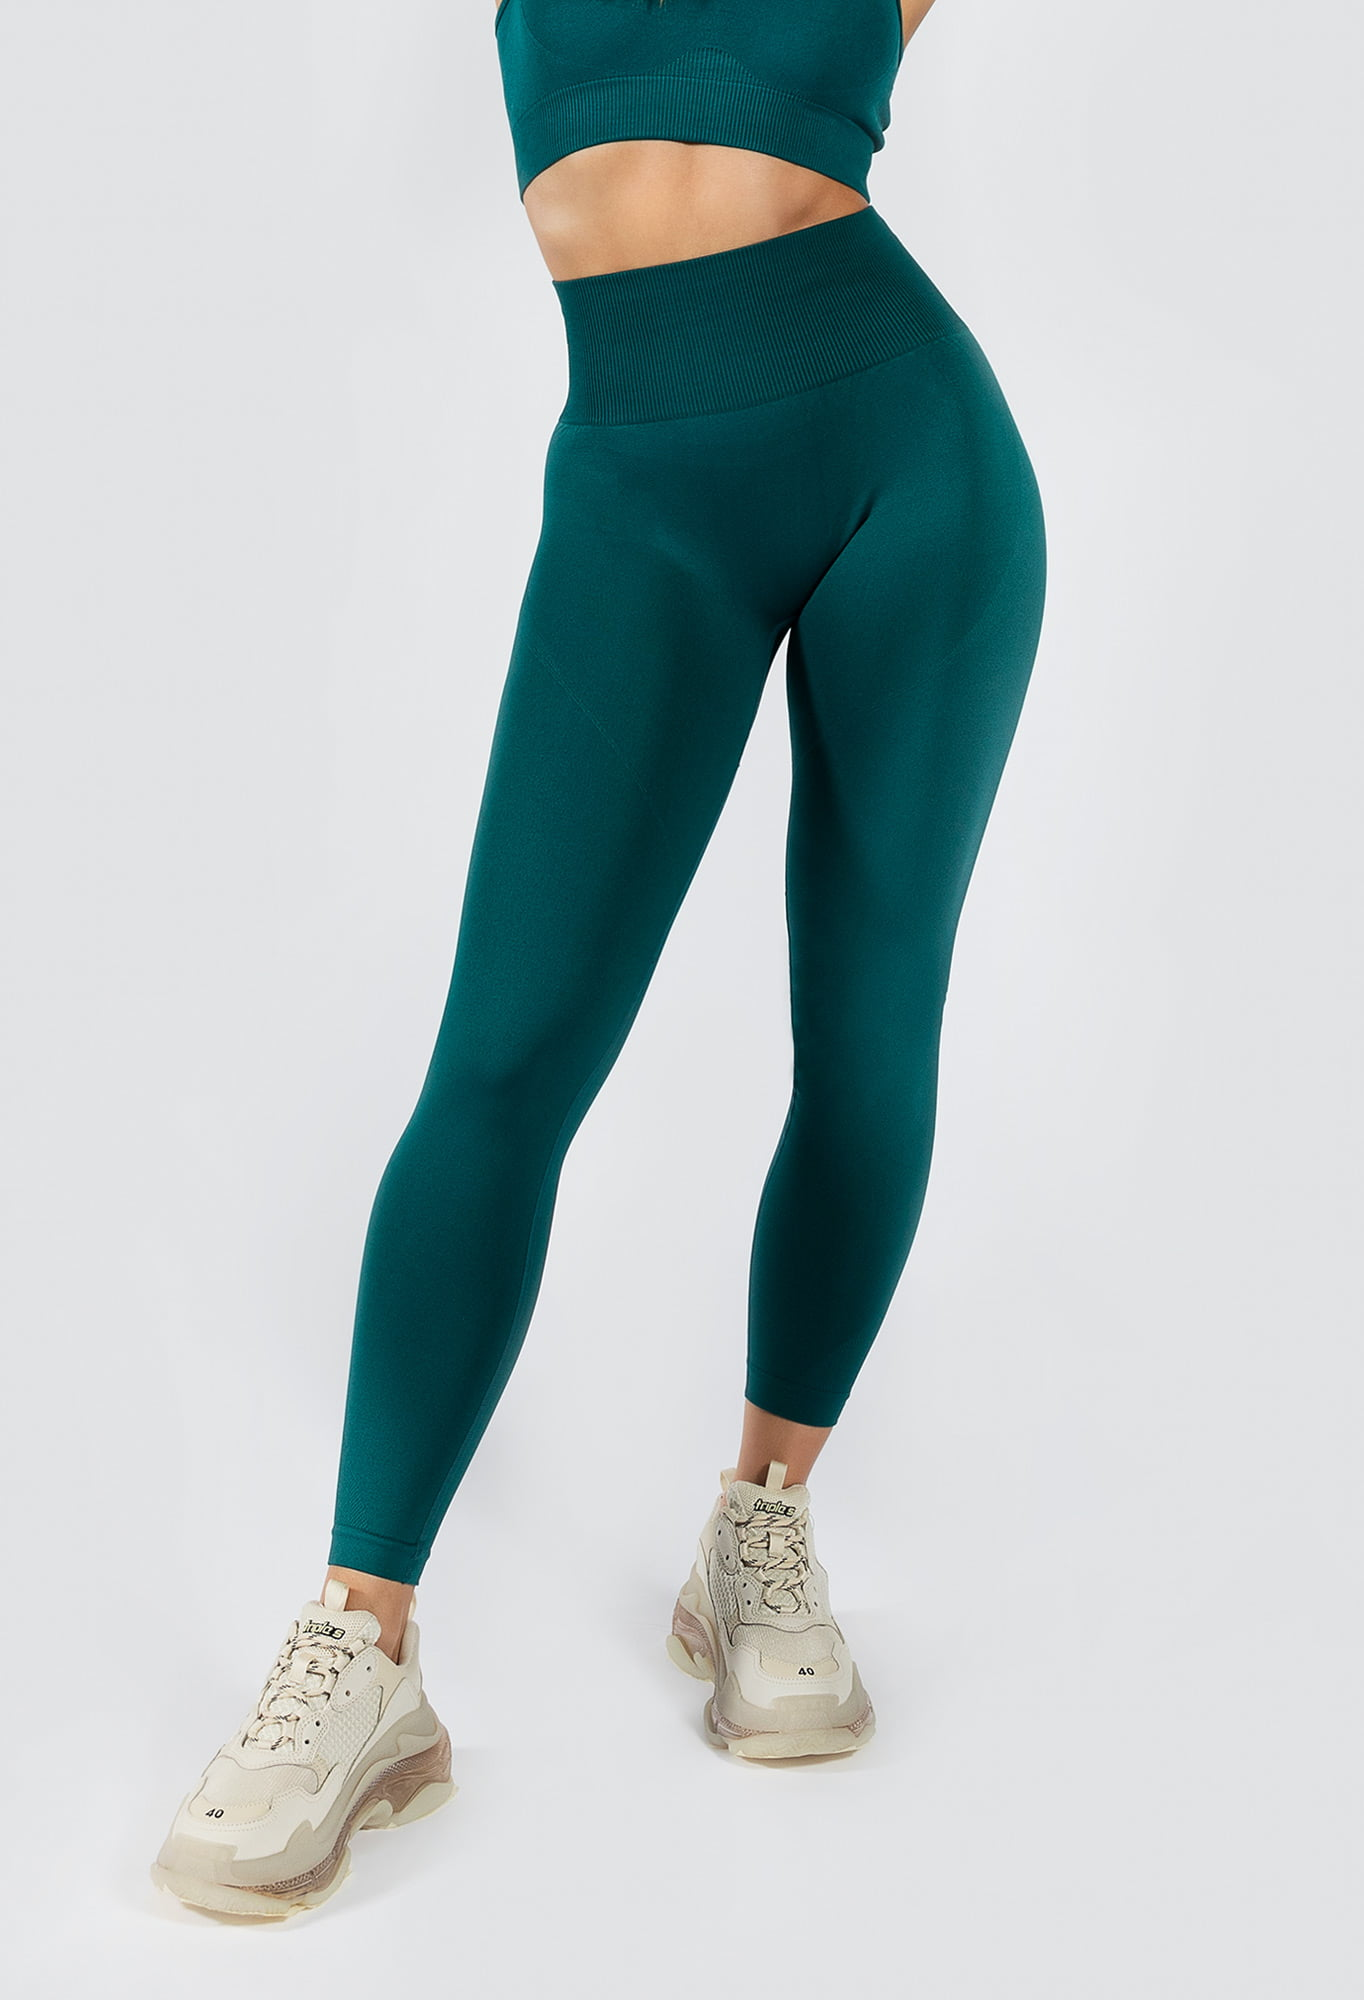 Muki seamless yoga pant in emerald colour